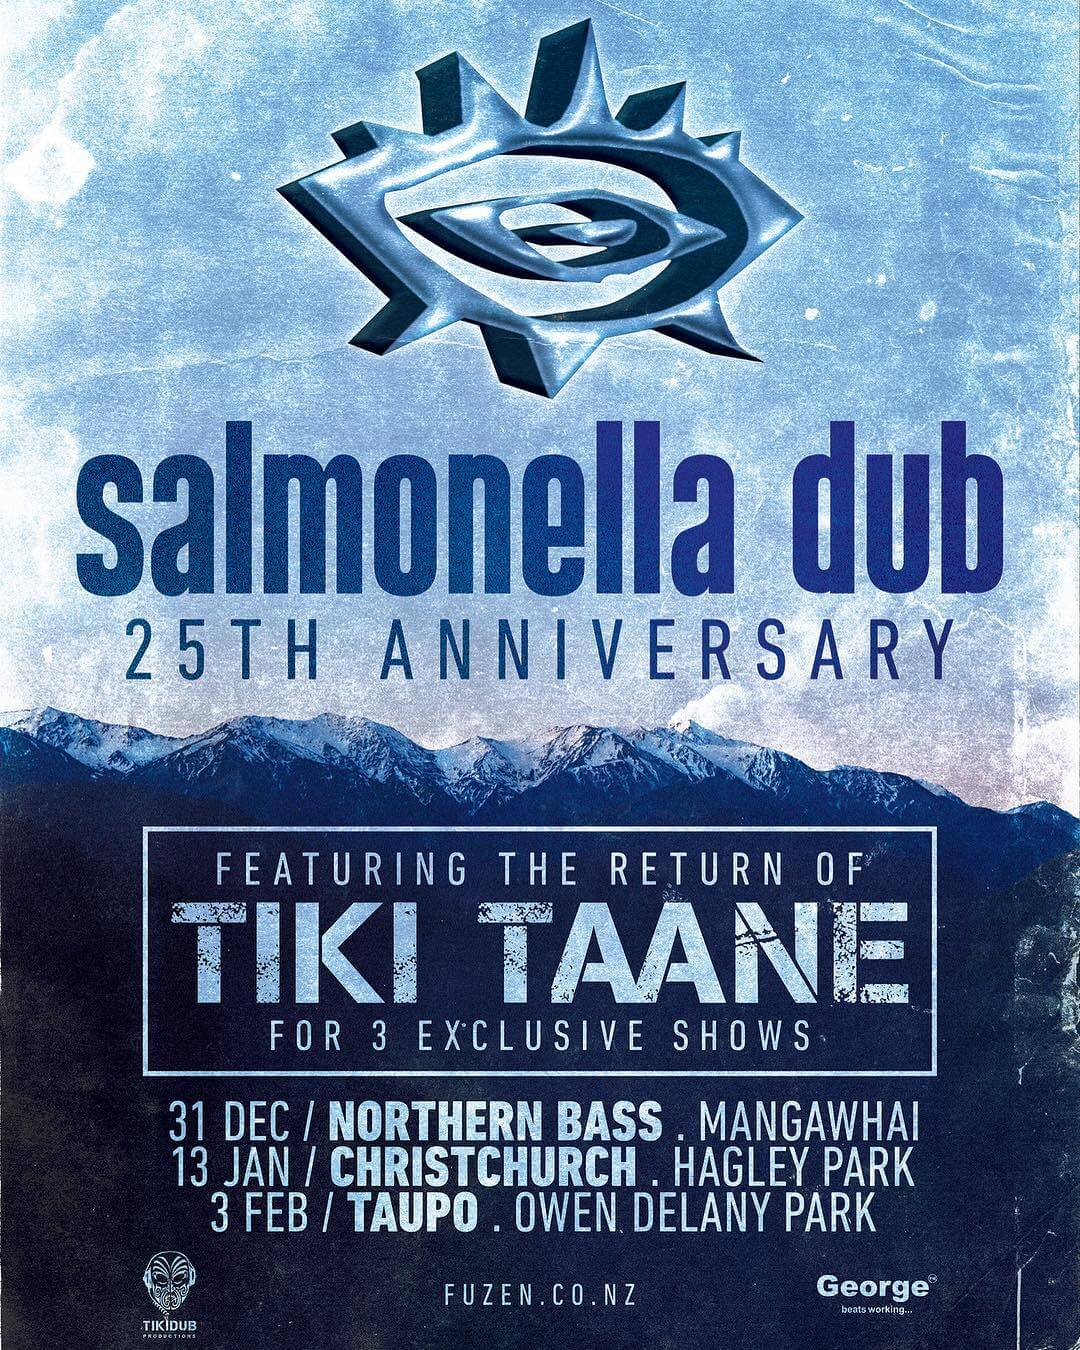 It's 11 years since I last played with the lads so I'm super amped to help celebrate 25 years of Salmonella Dub with 3 NZ shows ONLY! What songs do you wana hear in the set? @fuzennz @northernbassnz